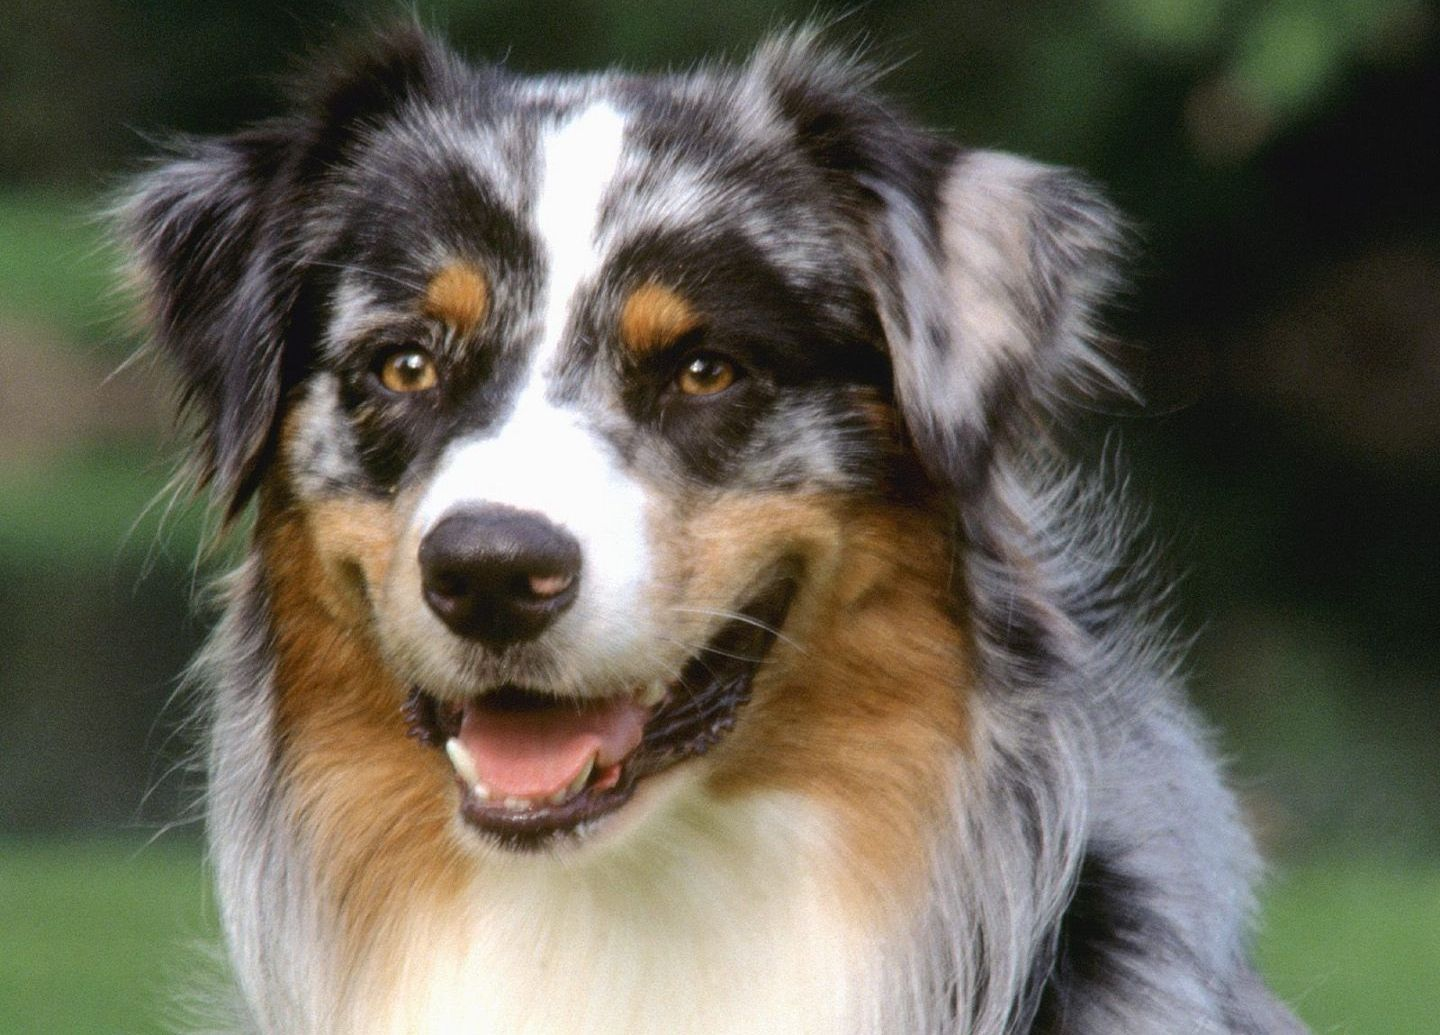 Dog Face Photo And Beautiful Australian Shepherd